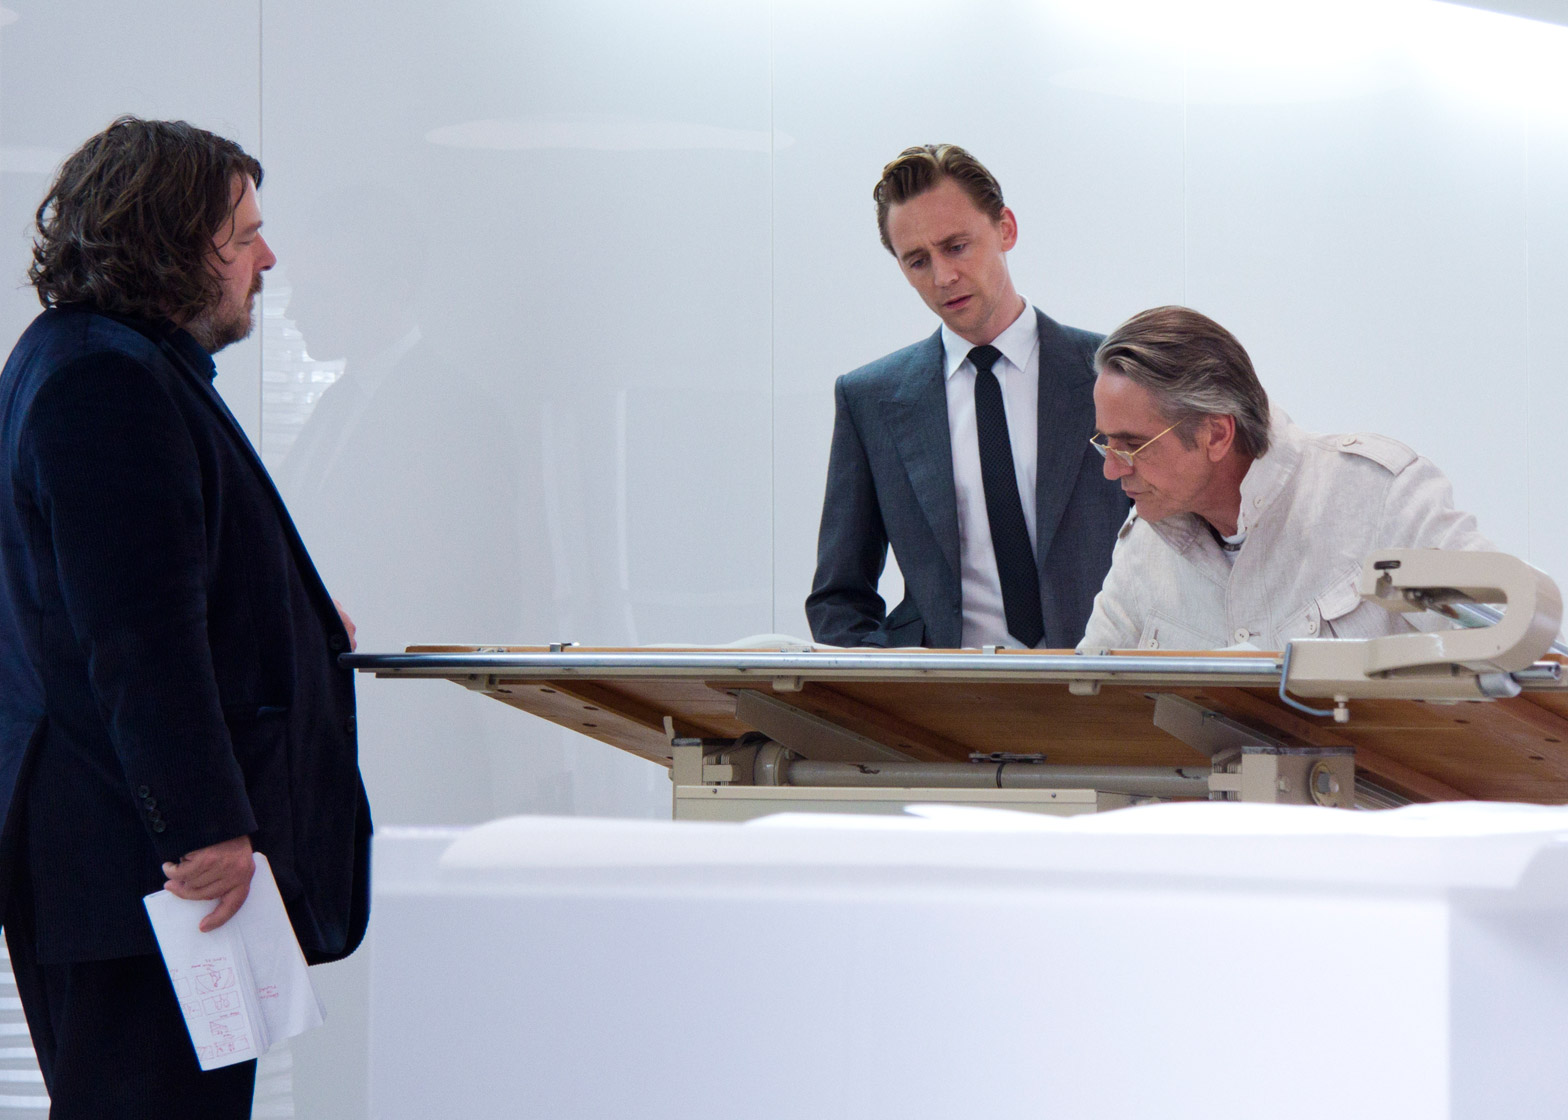 Director Ben Wheatley (far left), with Tom Hiddleston playing High Rise resident Dr Laing and Jeremy Irons paying architect Royal